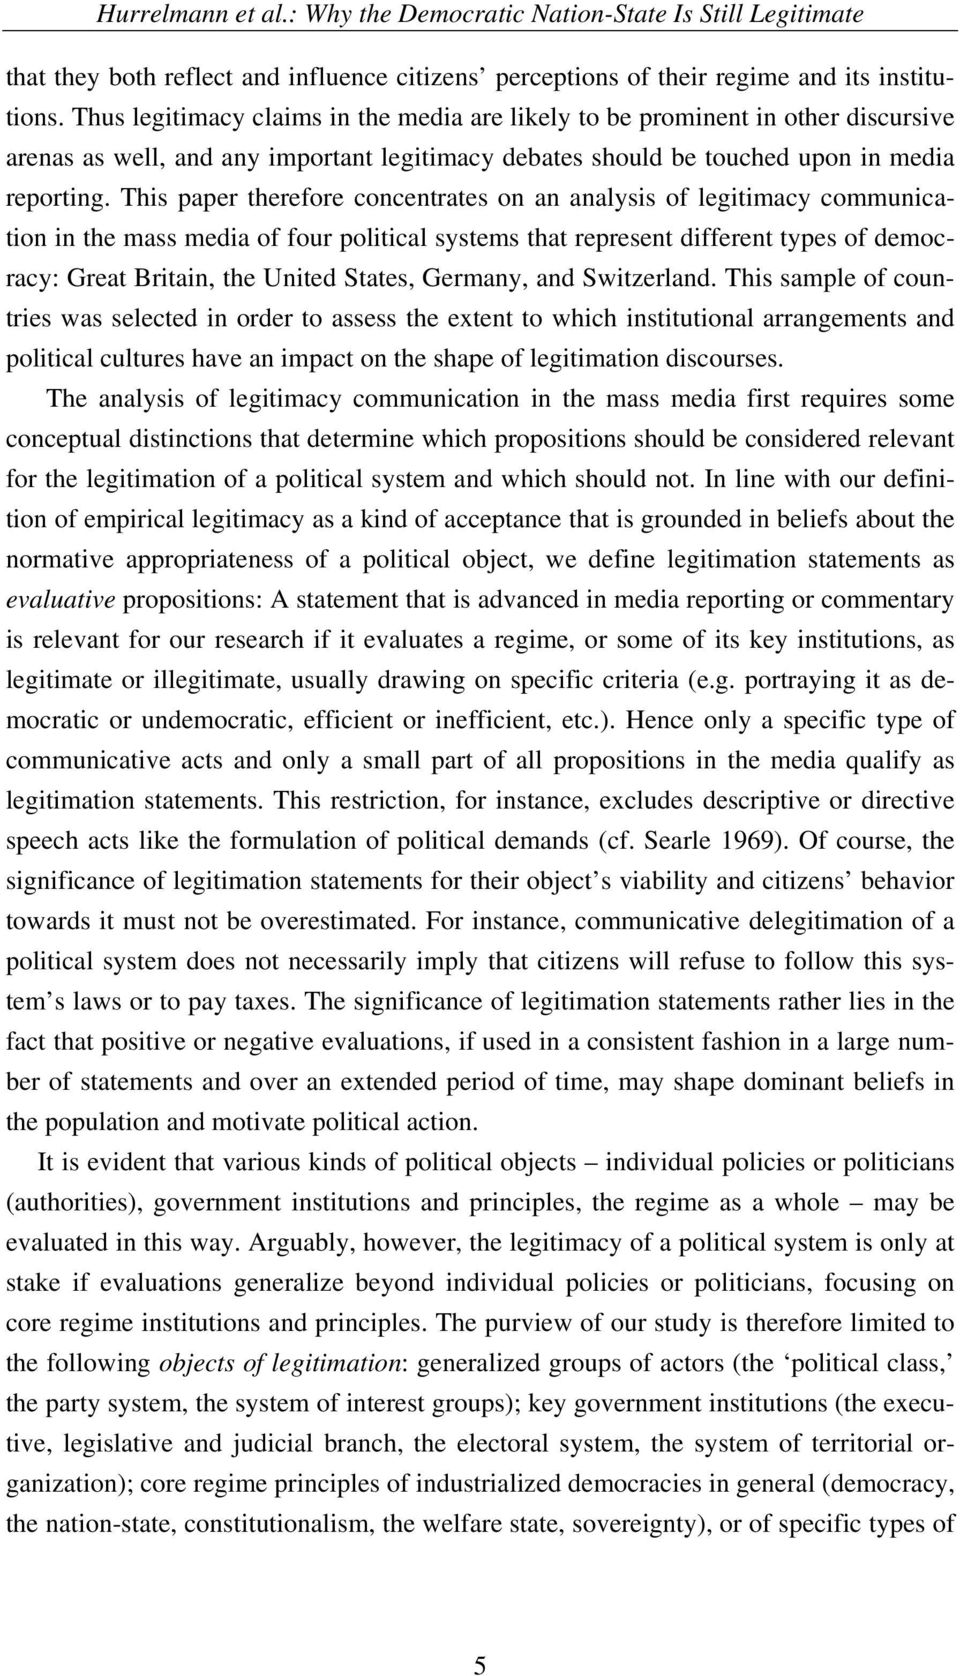 This paper therefore concentrates on an analysis of legitimacy communication in the mass media of four political systems that represent different types of democracy: Great Britain, the United States,